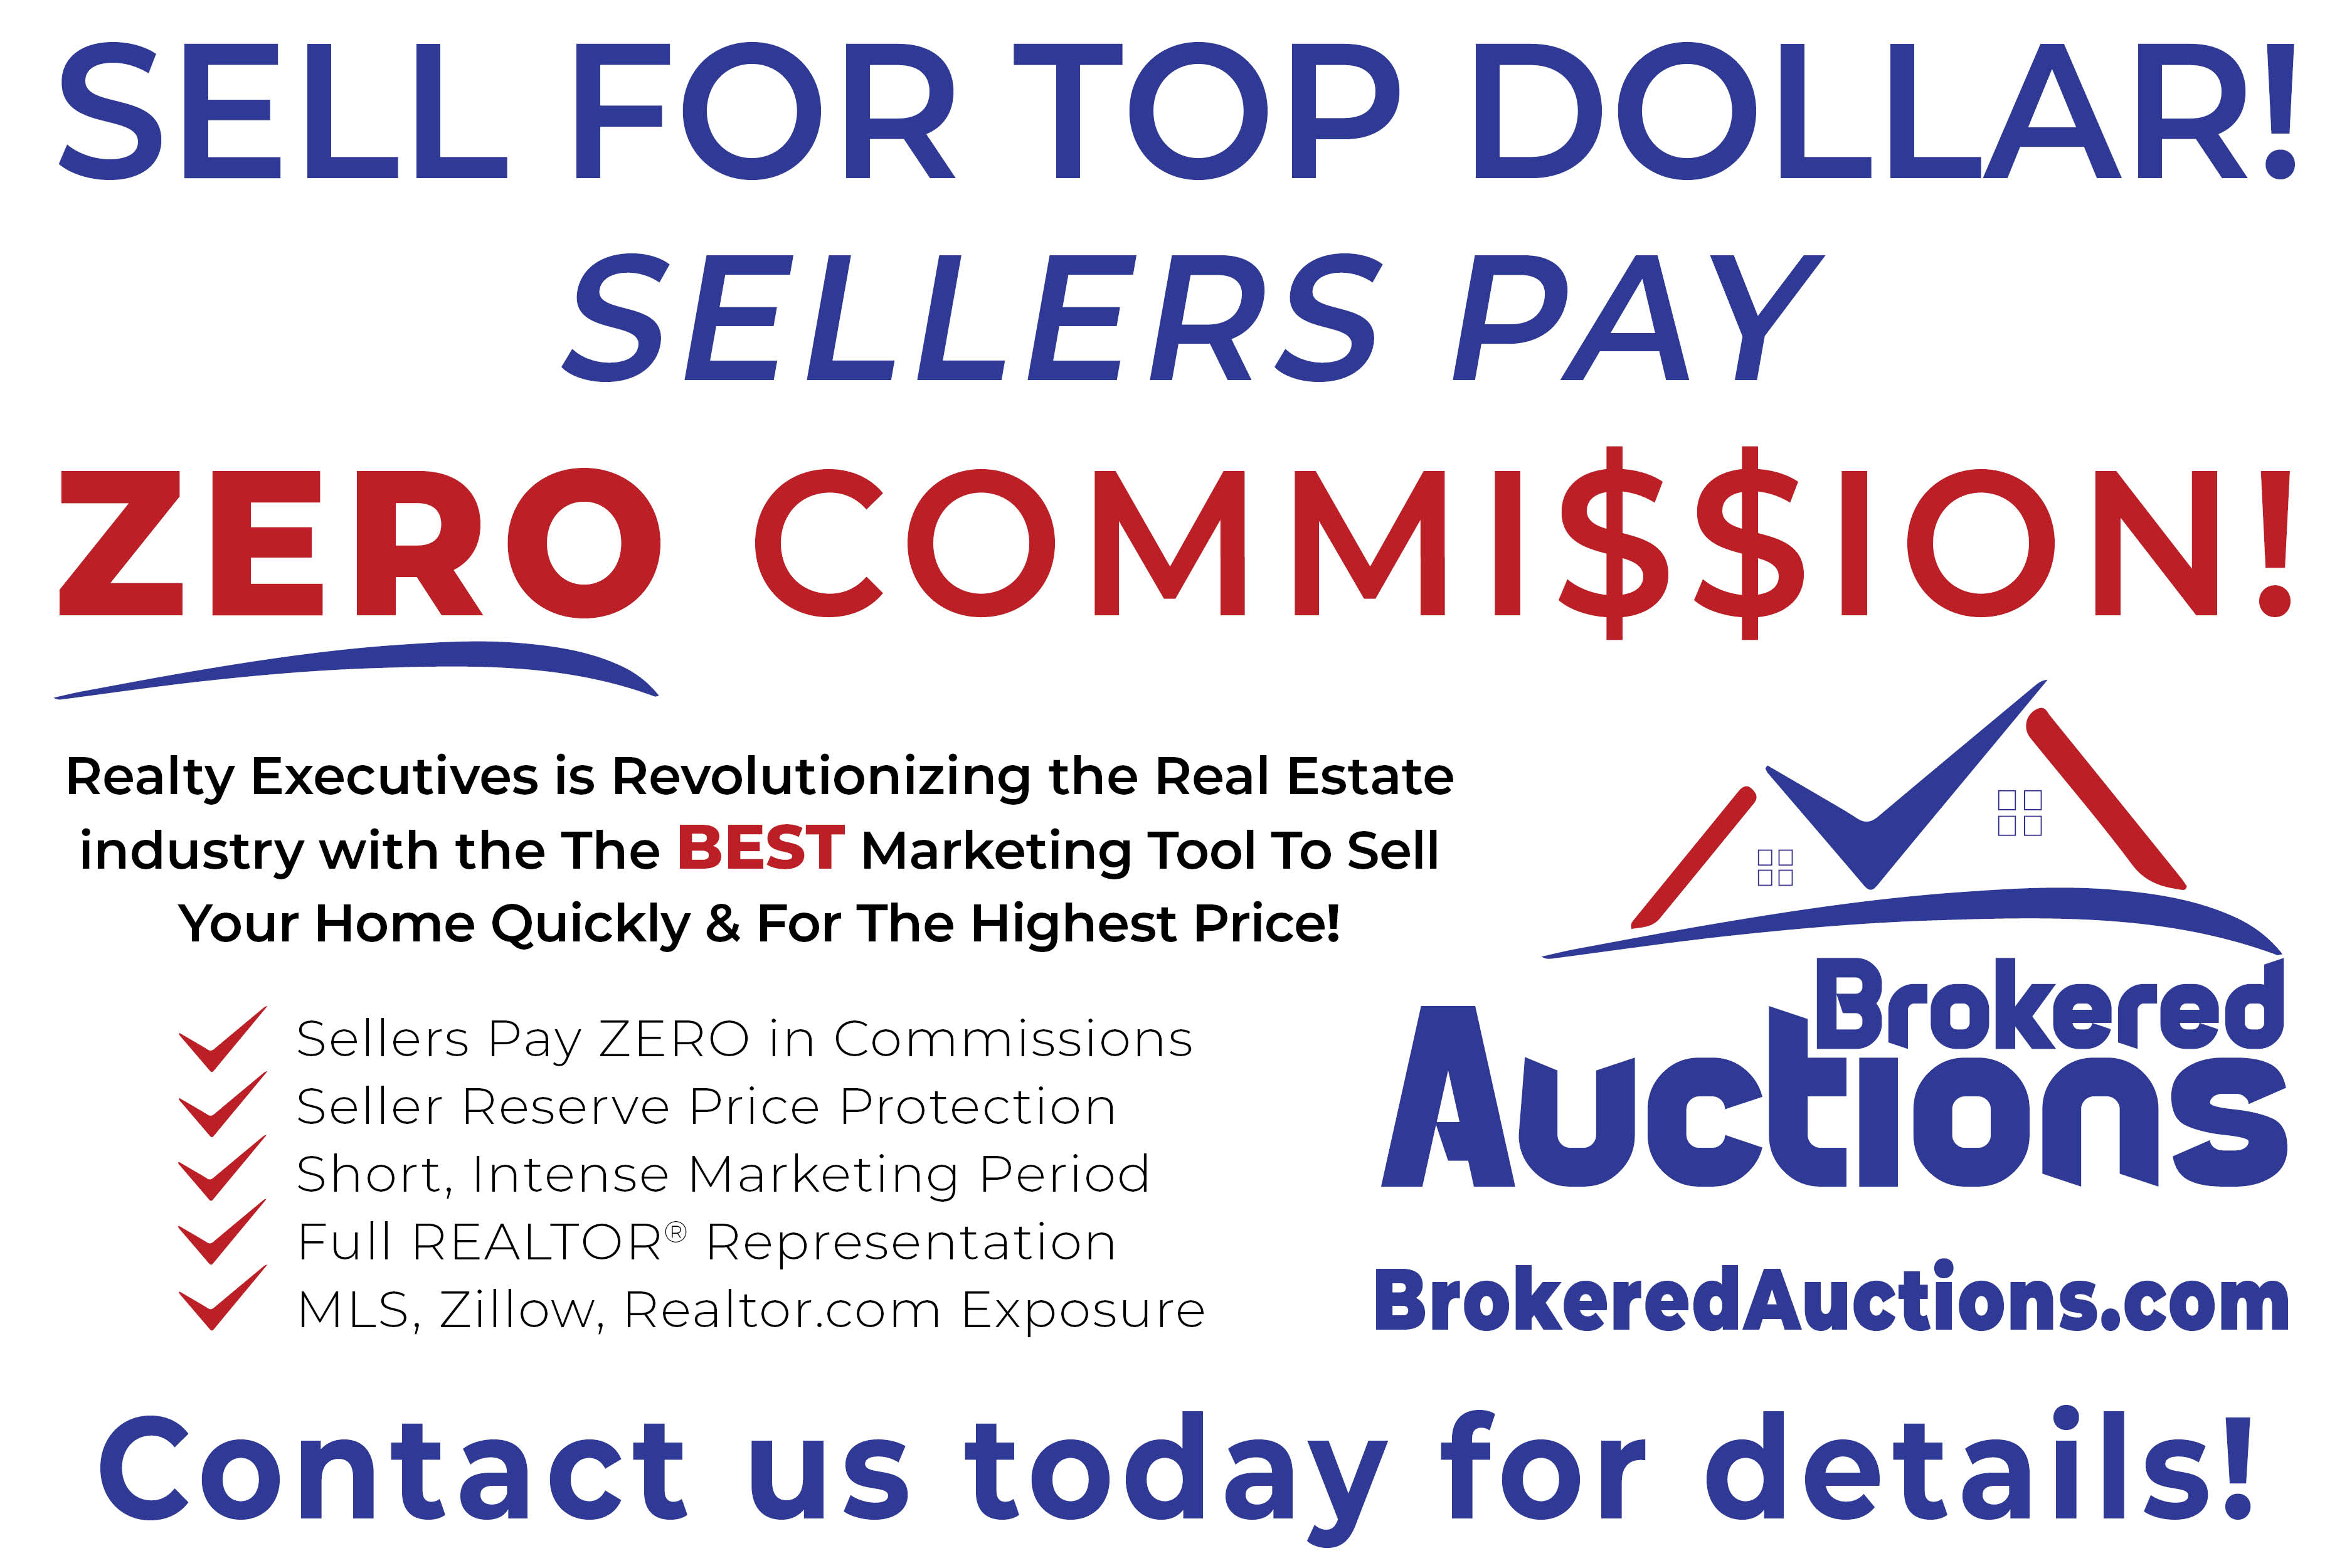 Brokered Auctions